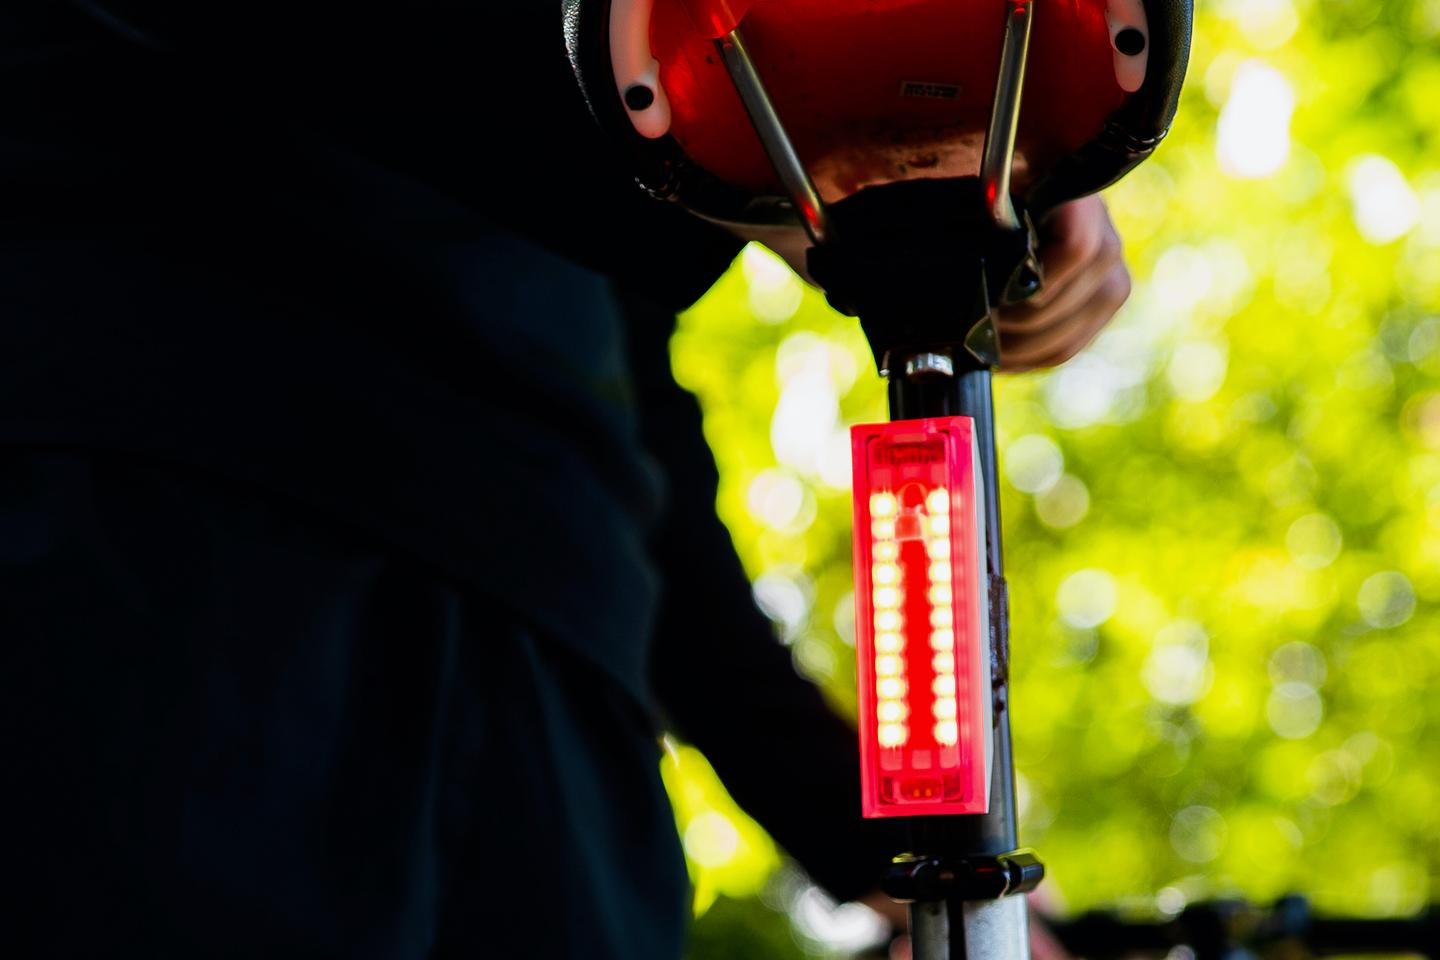 The SureLight flashes orange when it detects vehicles closing in too fast from the rear